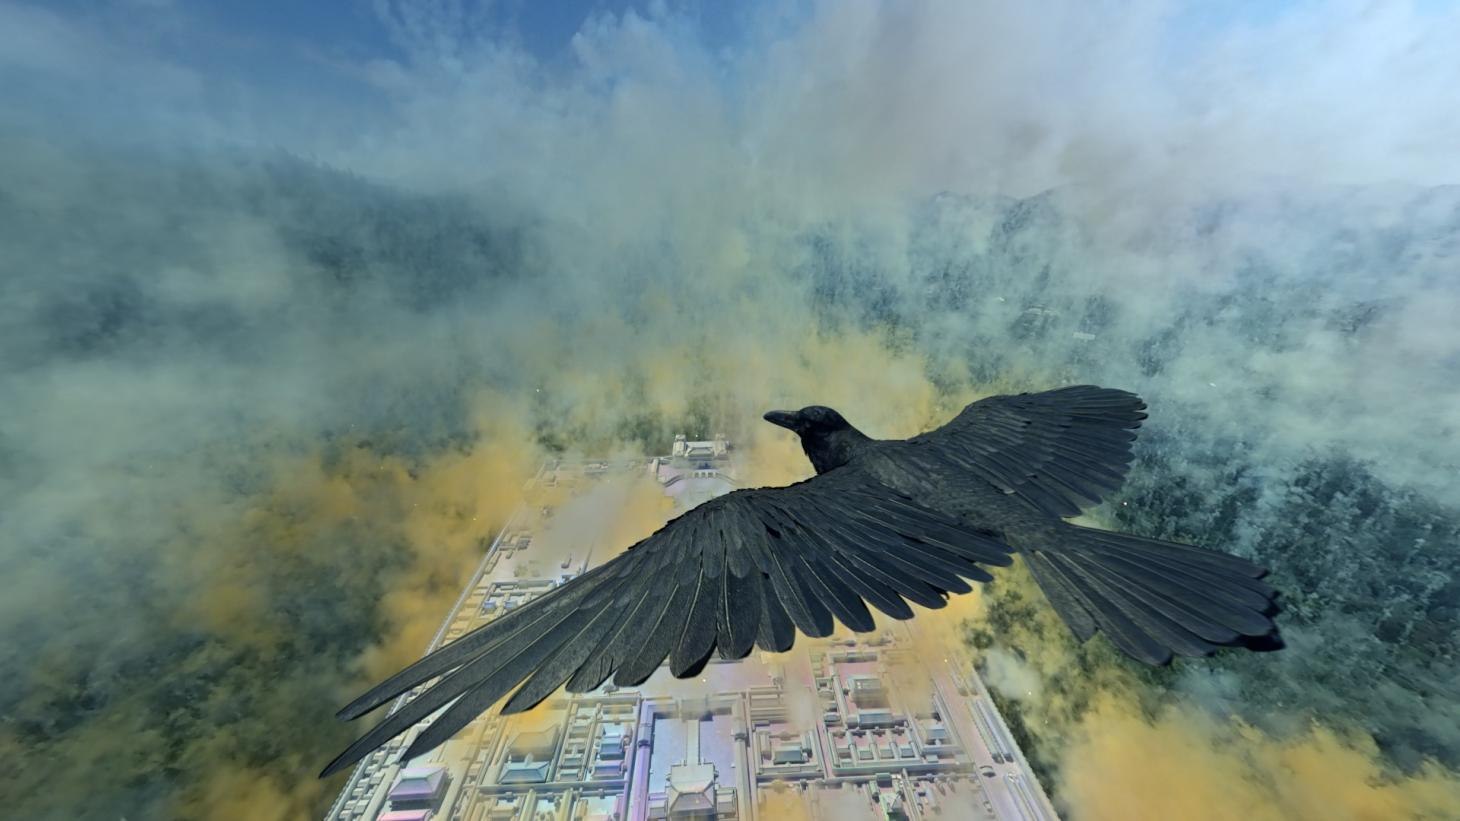 Still from Cai Guo-Qiang's Sleepwalking in the Forbidden City showing a crow soaring above coloured smoke